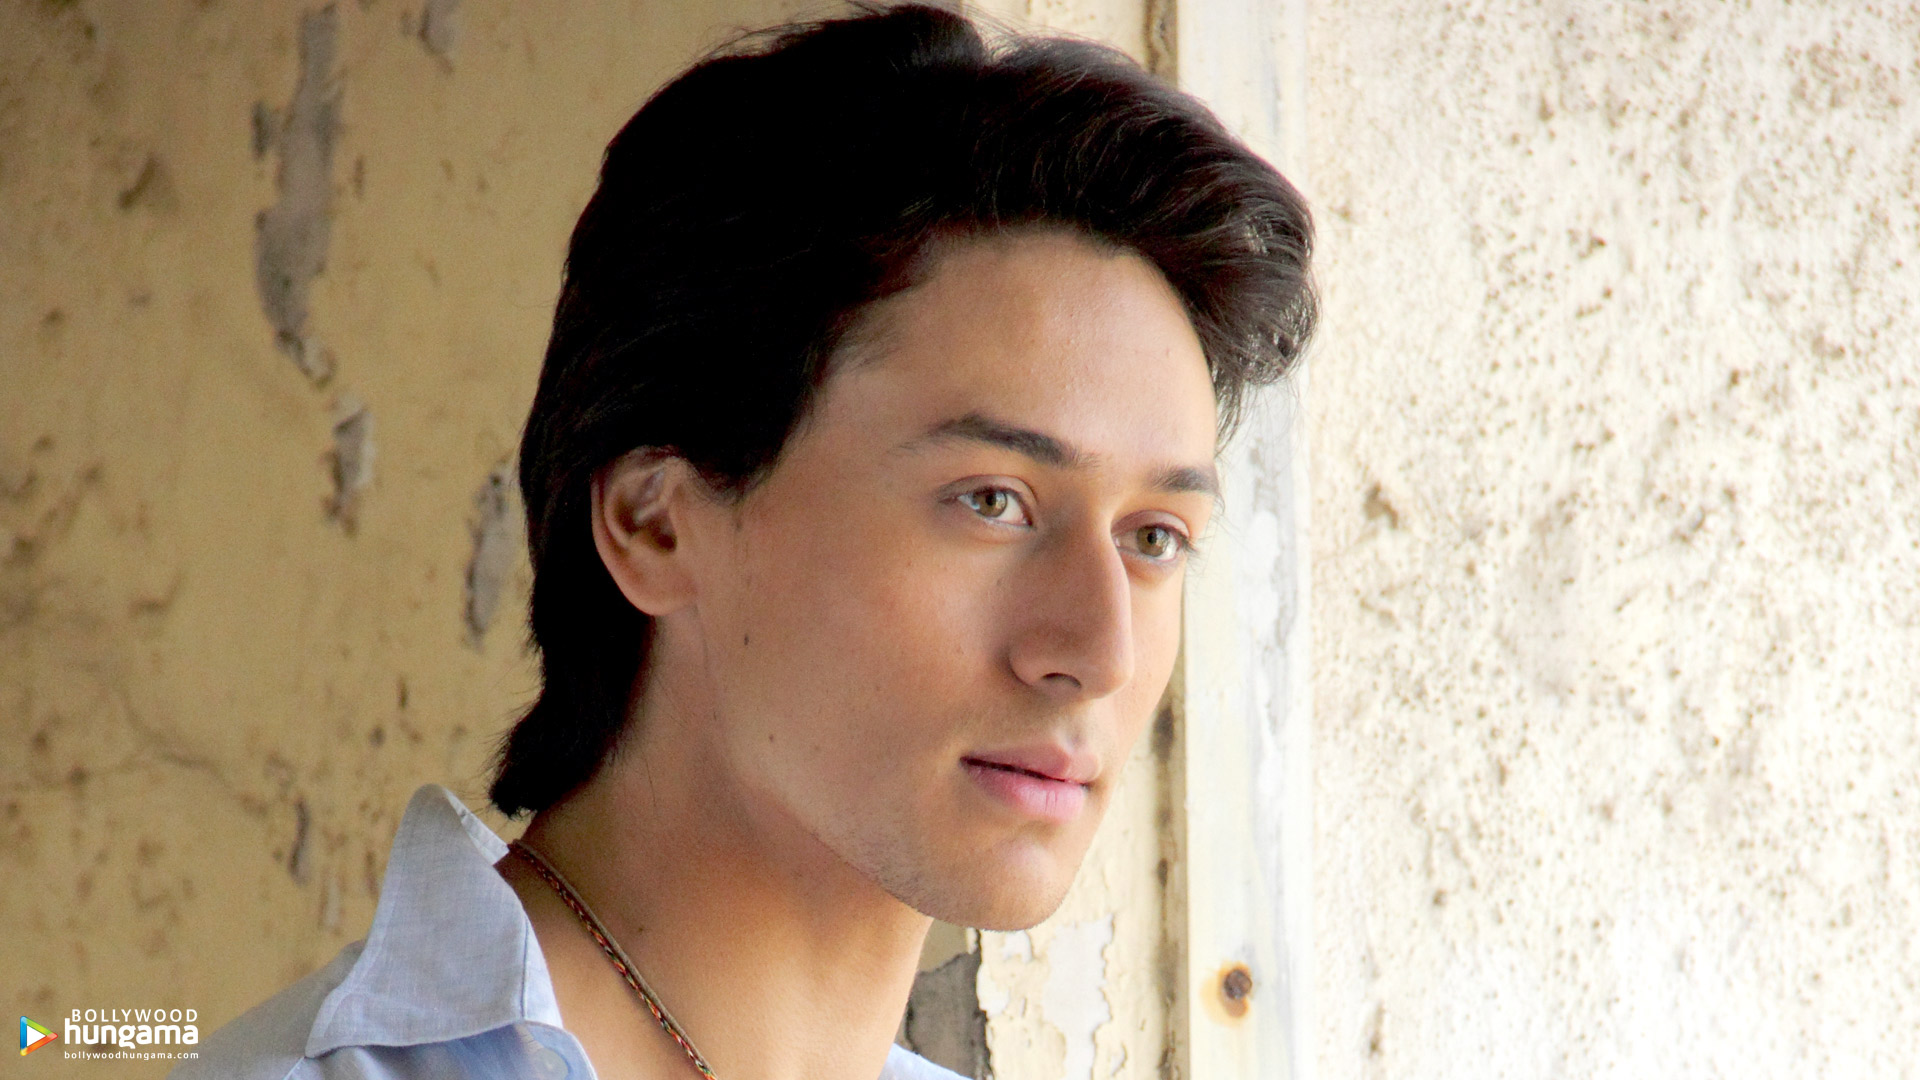 tiger shroff wallpapers | tiger-shroff-4 - bollywood hungama